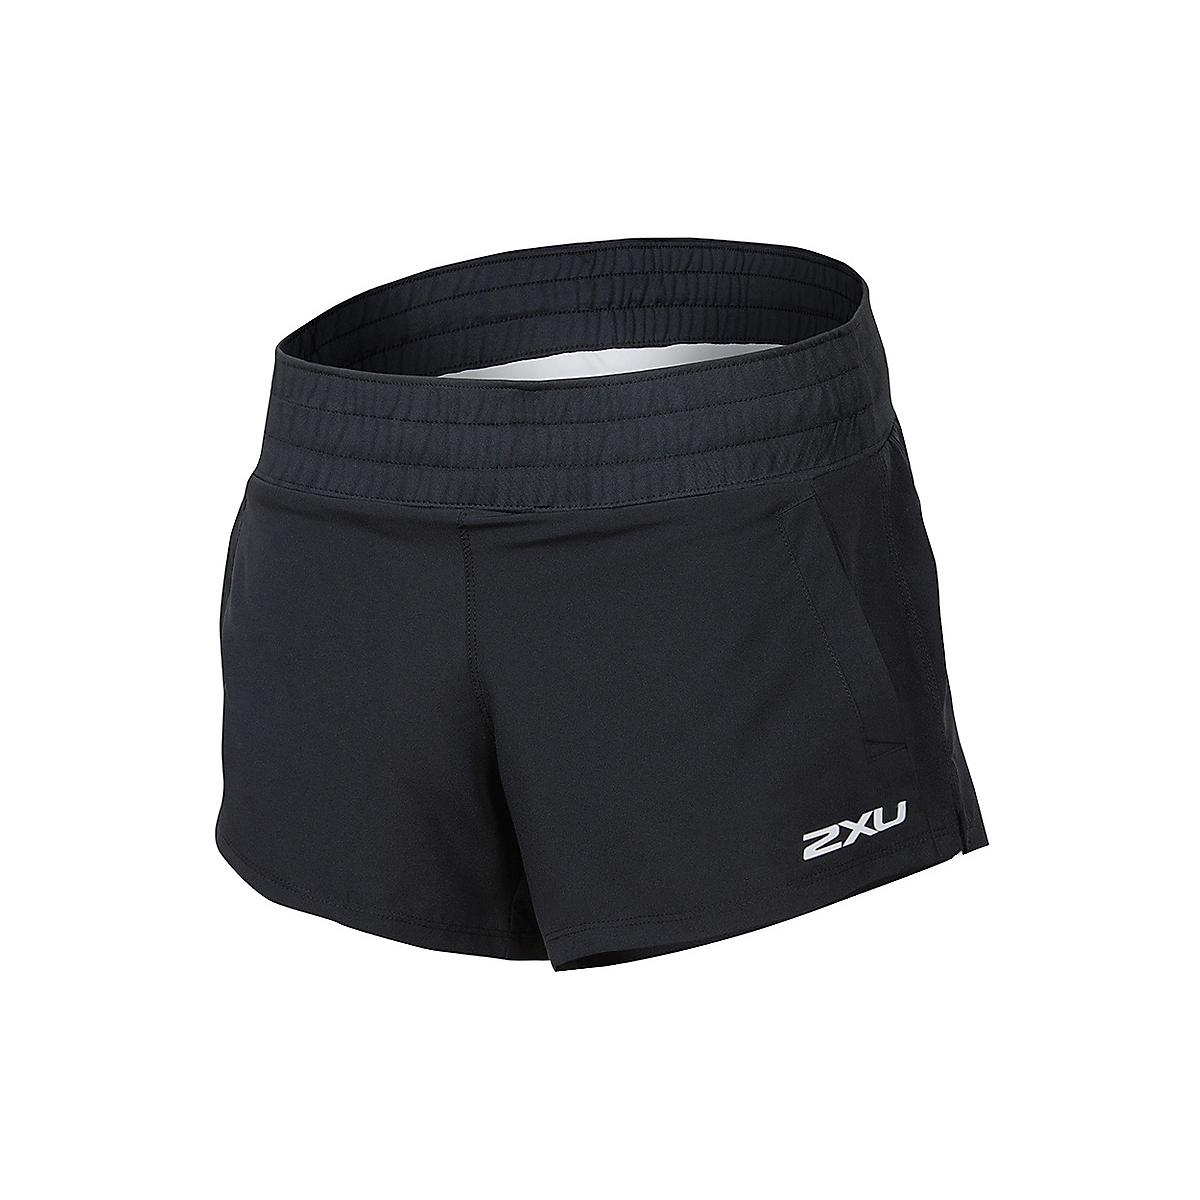 Women's 2XU�Stride 4